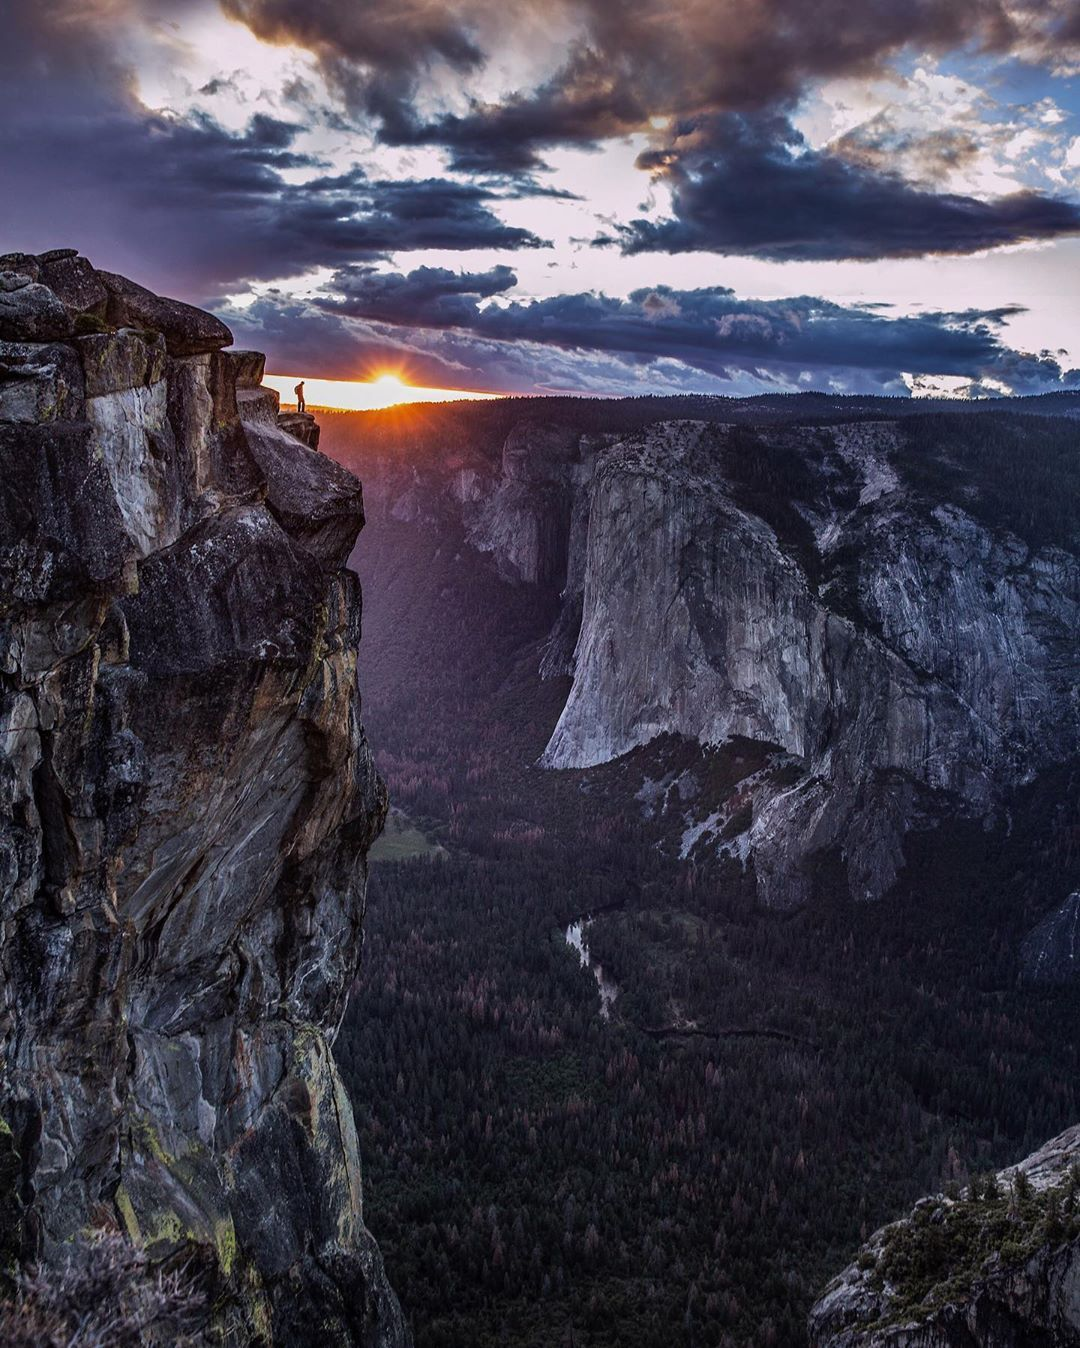 National Geographic On Instagram Photos By Jimmy Chin Jimmychin We Have Been On A Wild Ride With Freesolofilm Over T Jimmy Chin National Geographic Photo